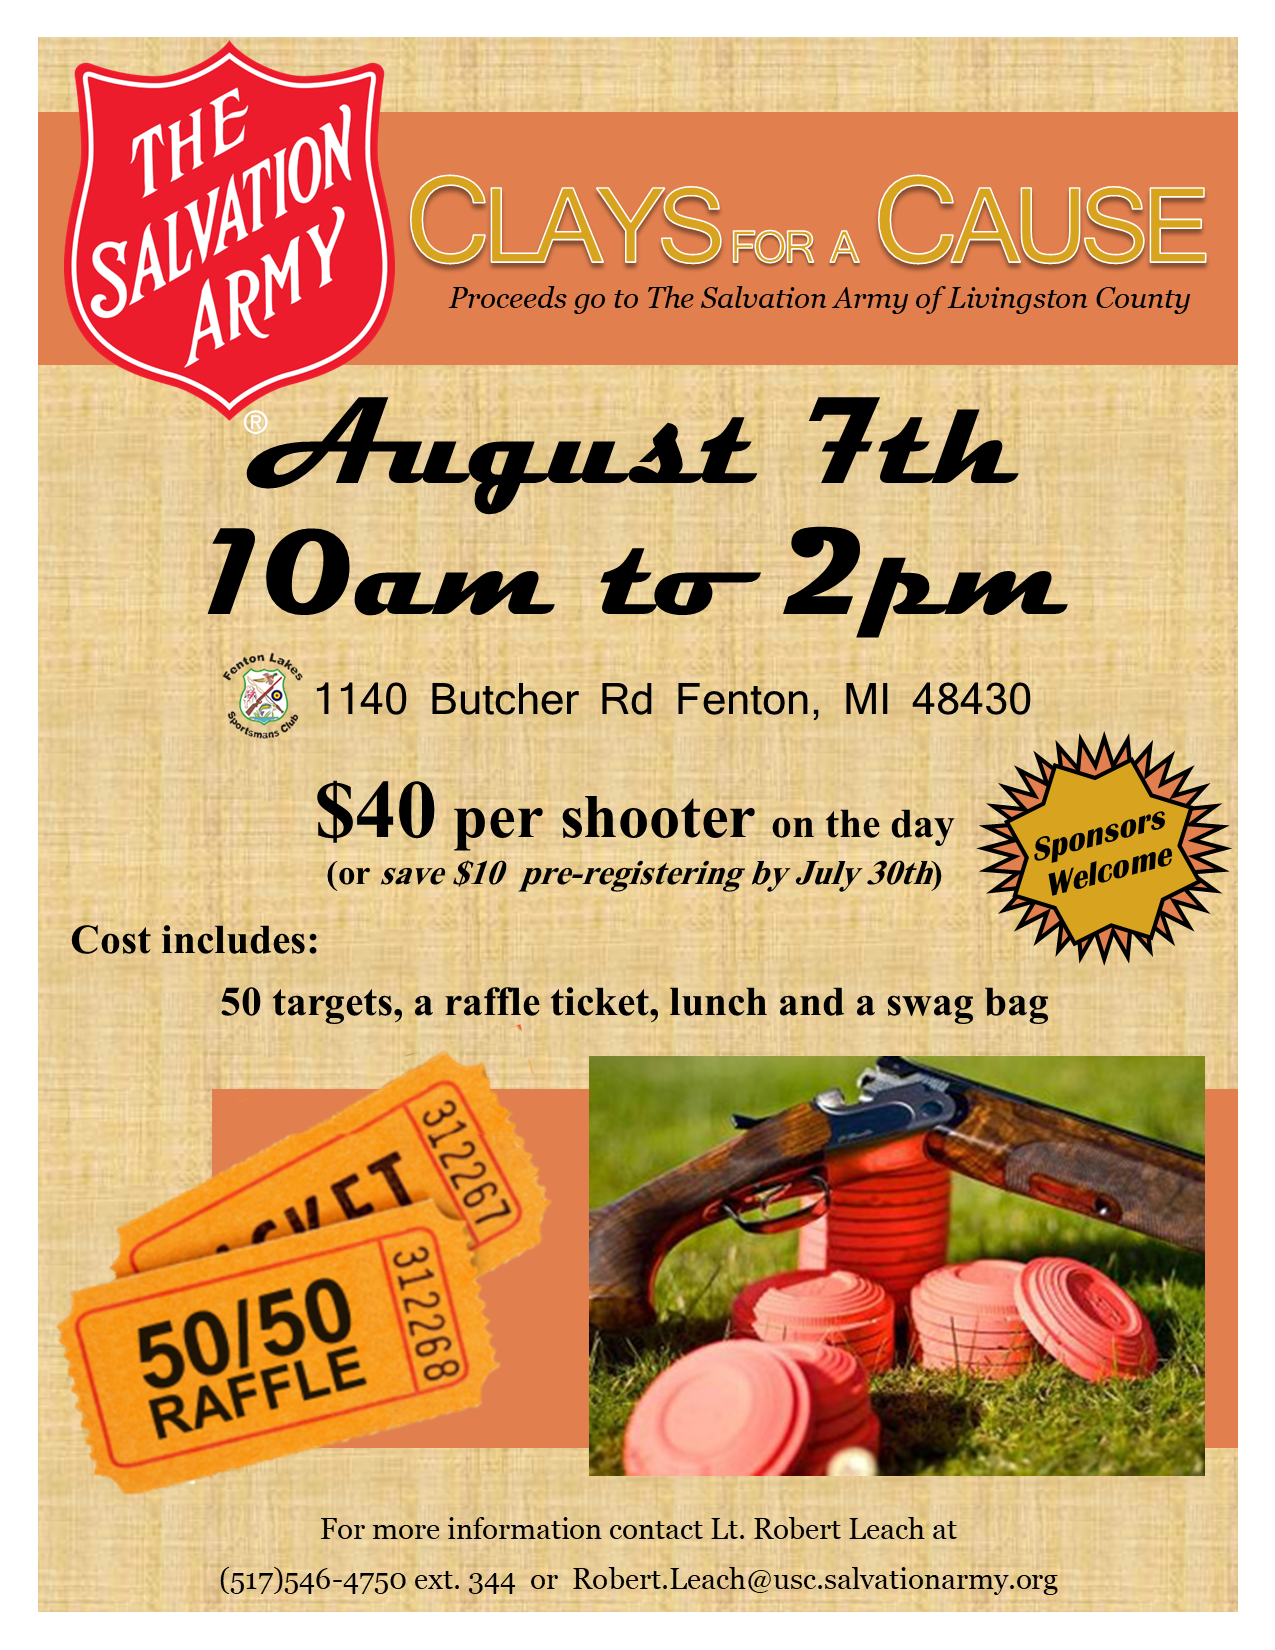 Clays for a Cause Image